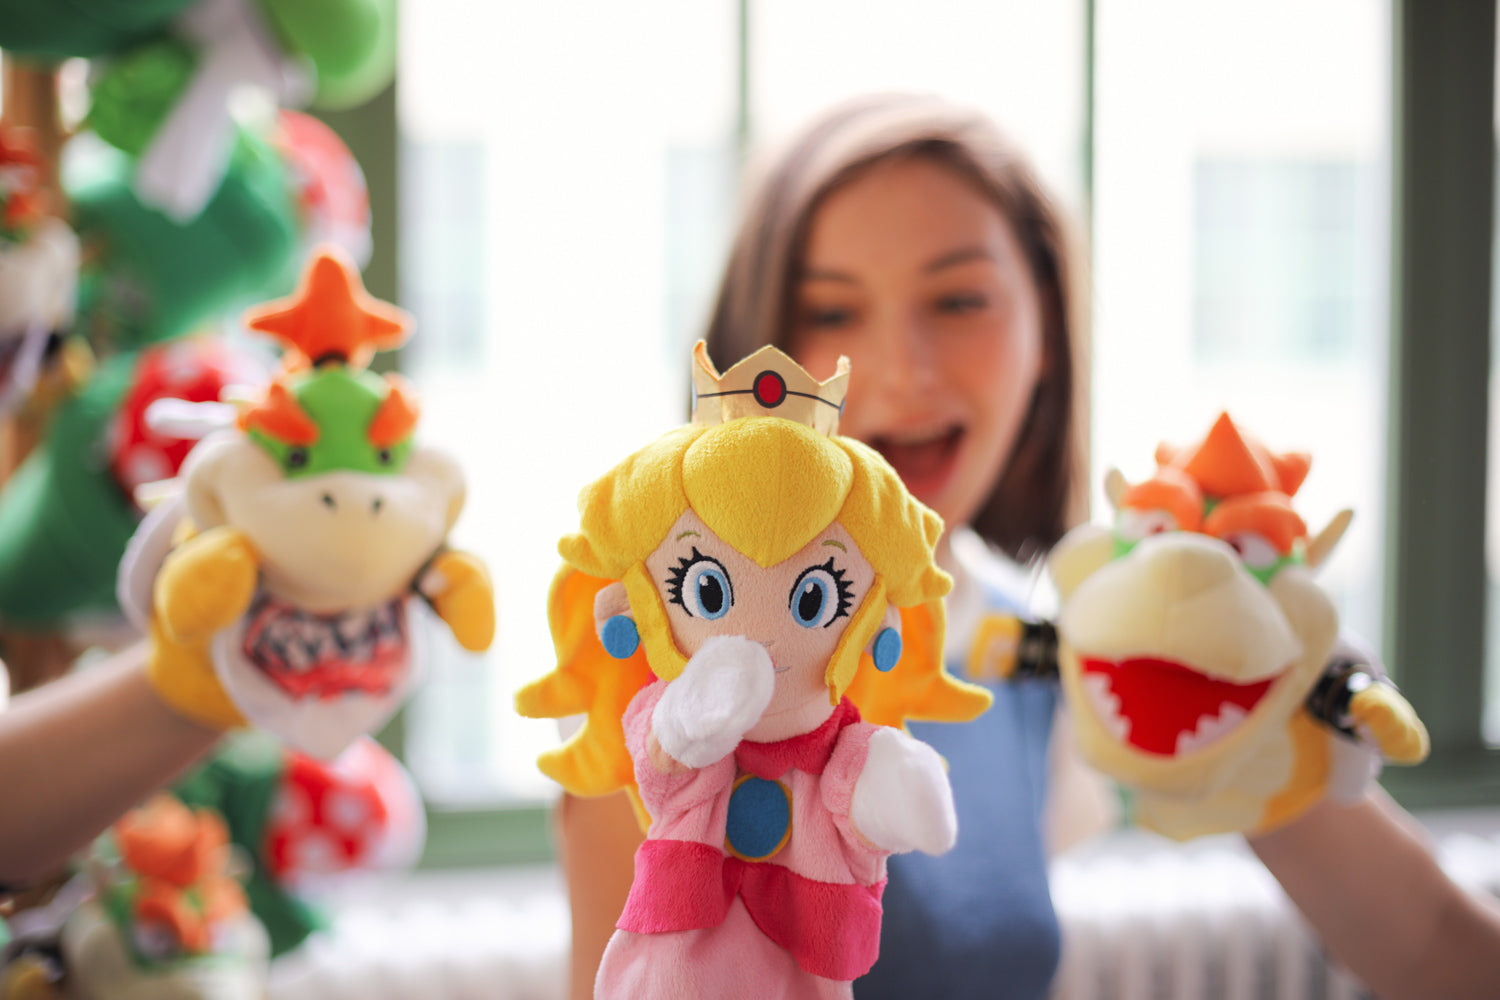 Licensed Super Mario hand puppets, by Uncute (from left to right: Bowser Jr., Princess Peach, and Bowser)